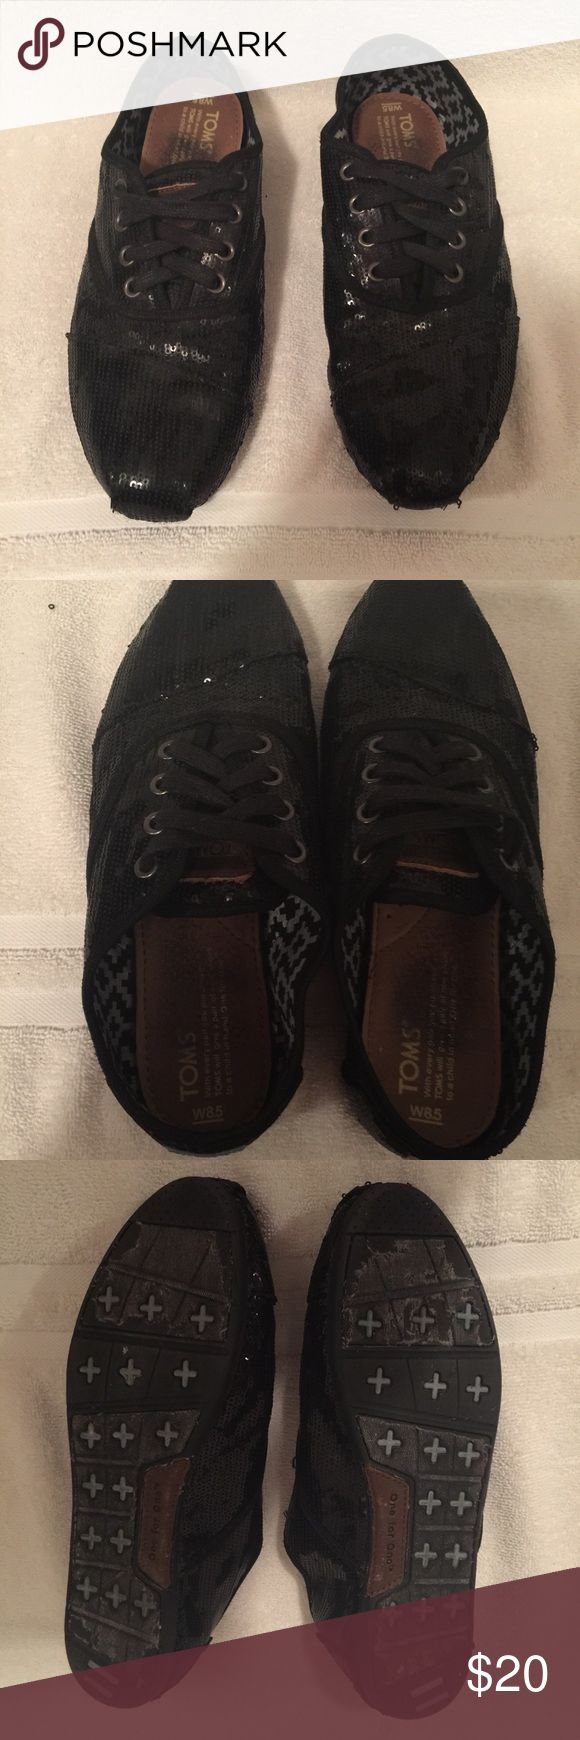 Sparkly Black Toms Sparky black toms with laces! Slightly worn, size 8.5 TOMS Shoes Flats & Loafers